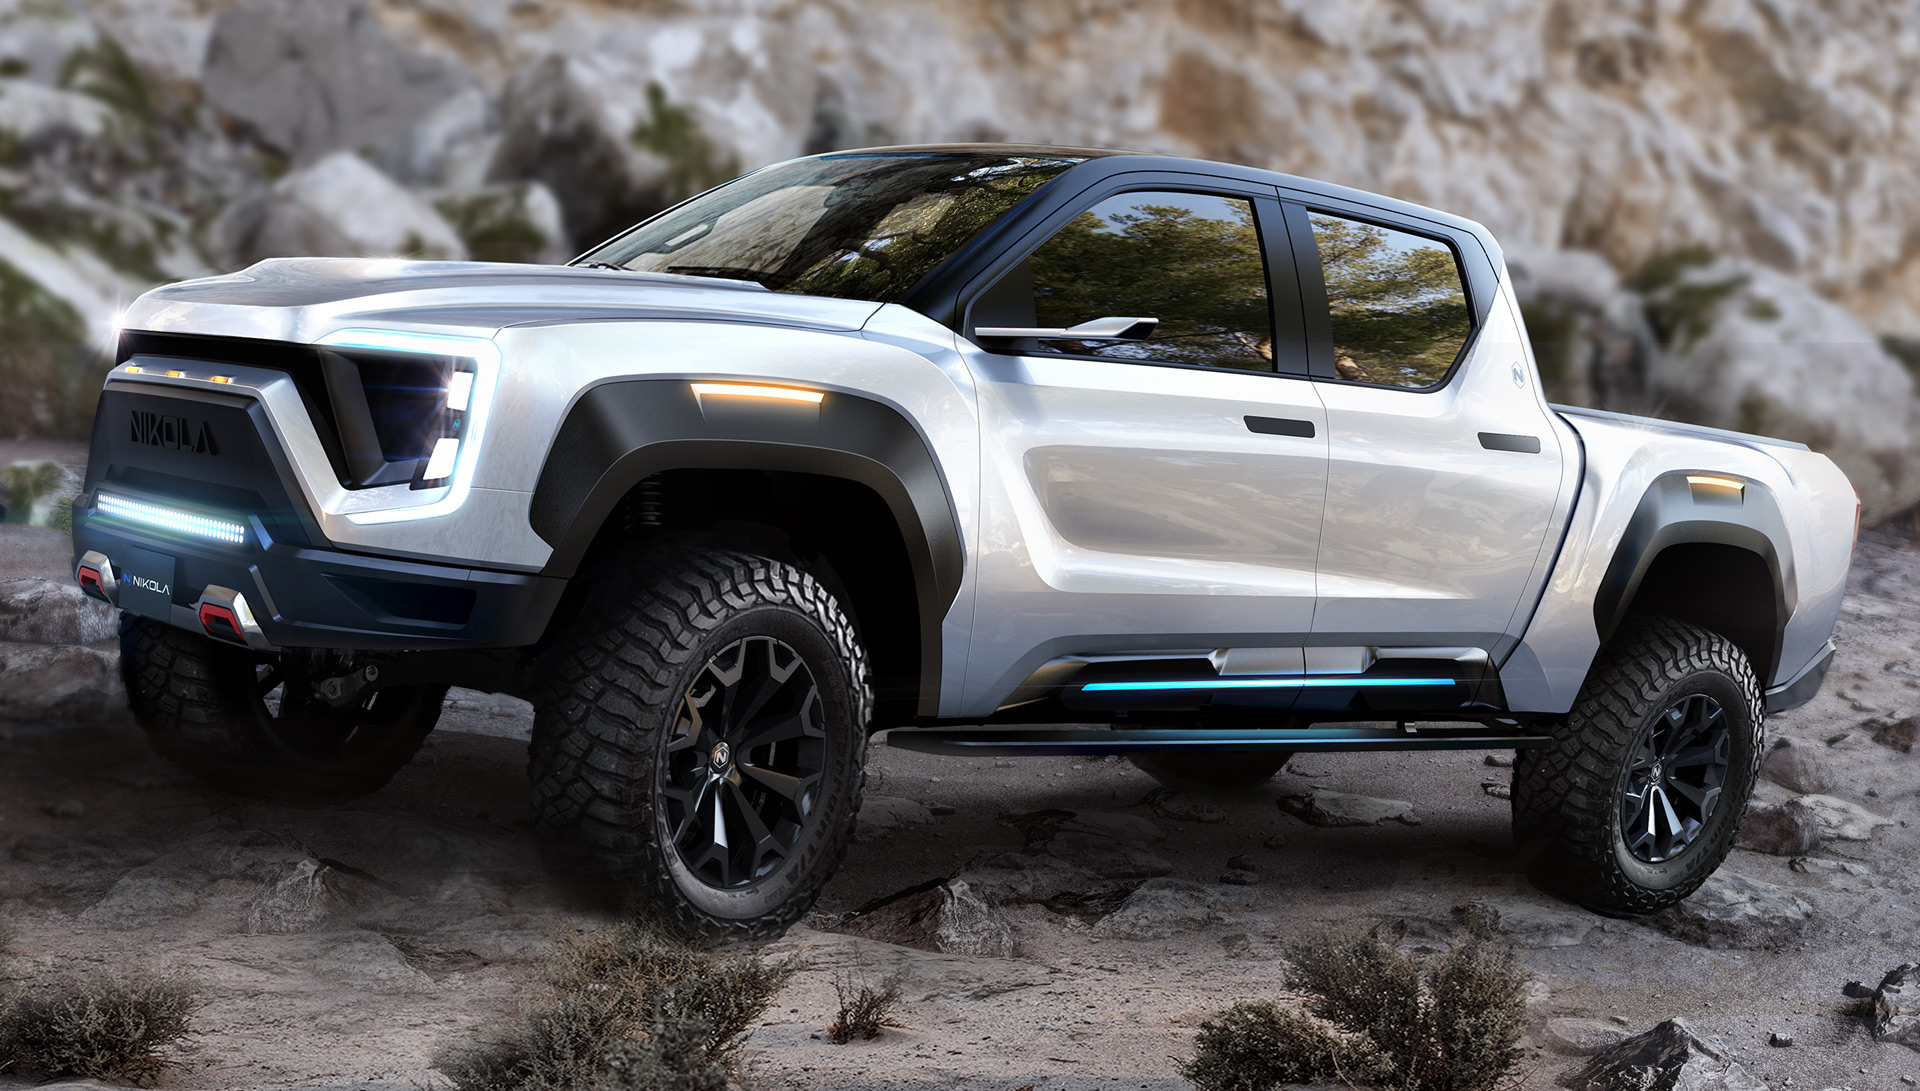 Nikola Badger is first electric pickup with hydrogen range extender